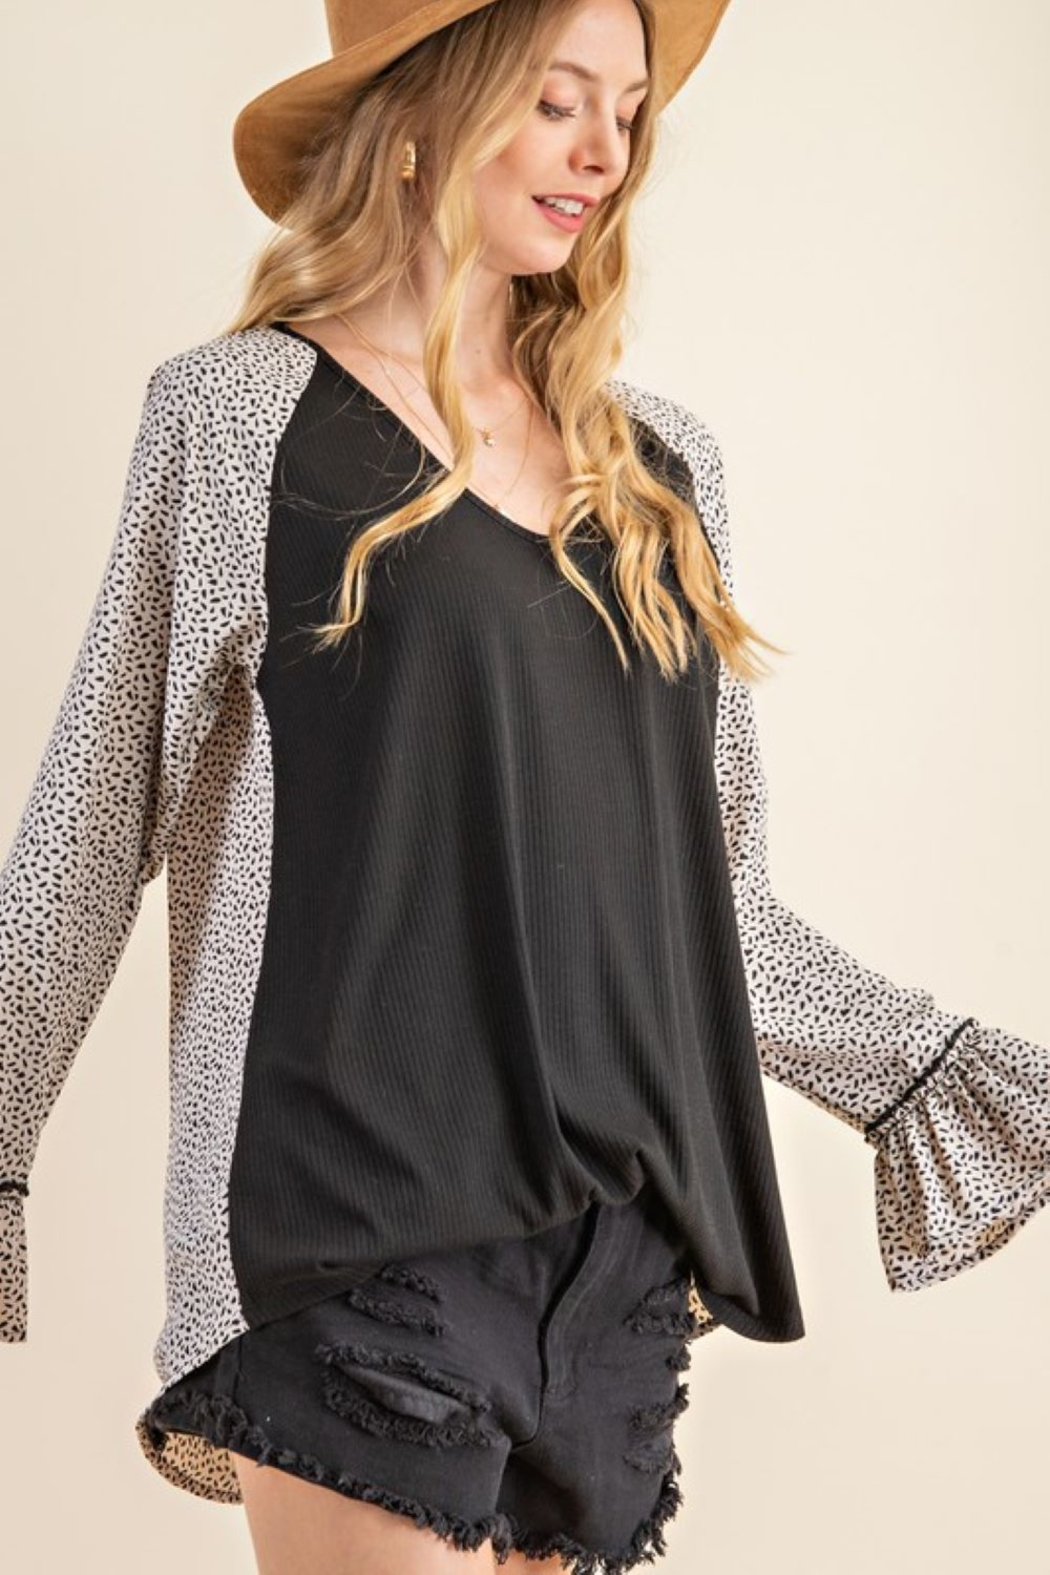 143 Story Leopard Contrast Top with Ruffle Sleeve - Front Full Image